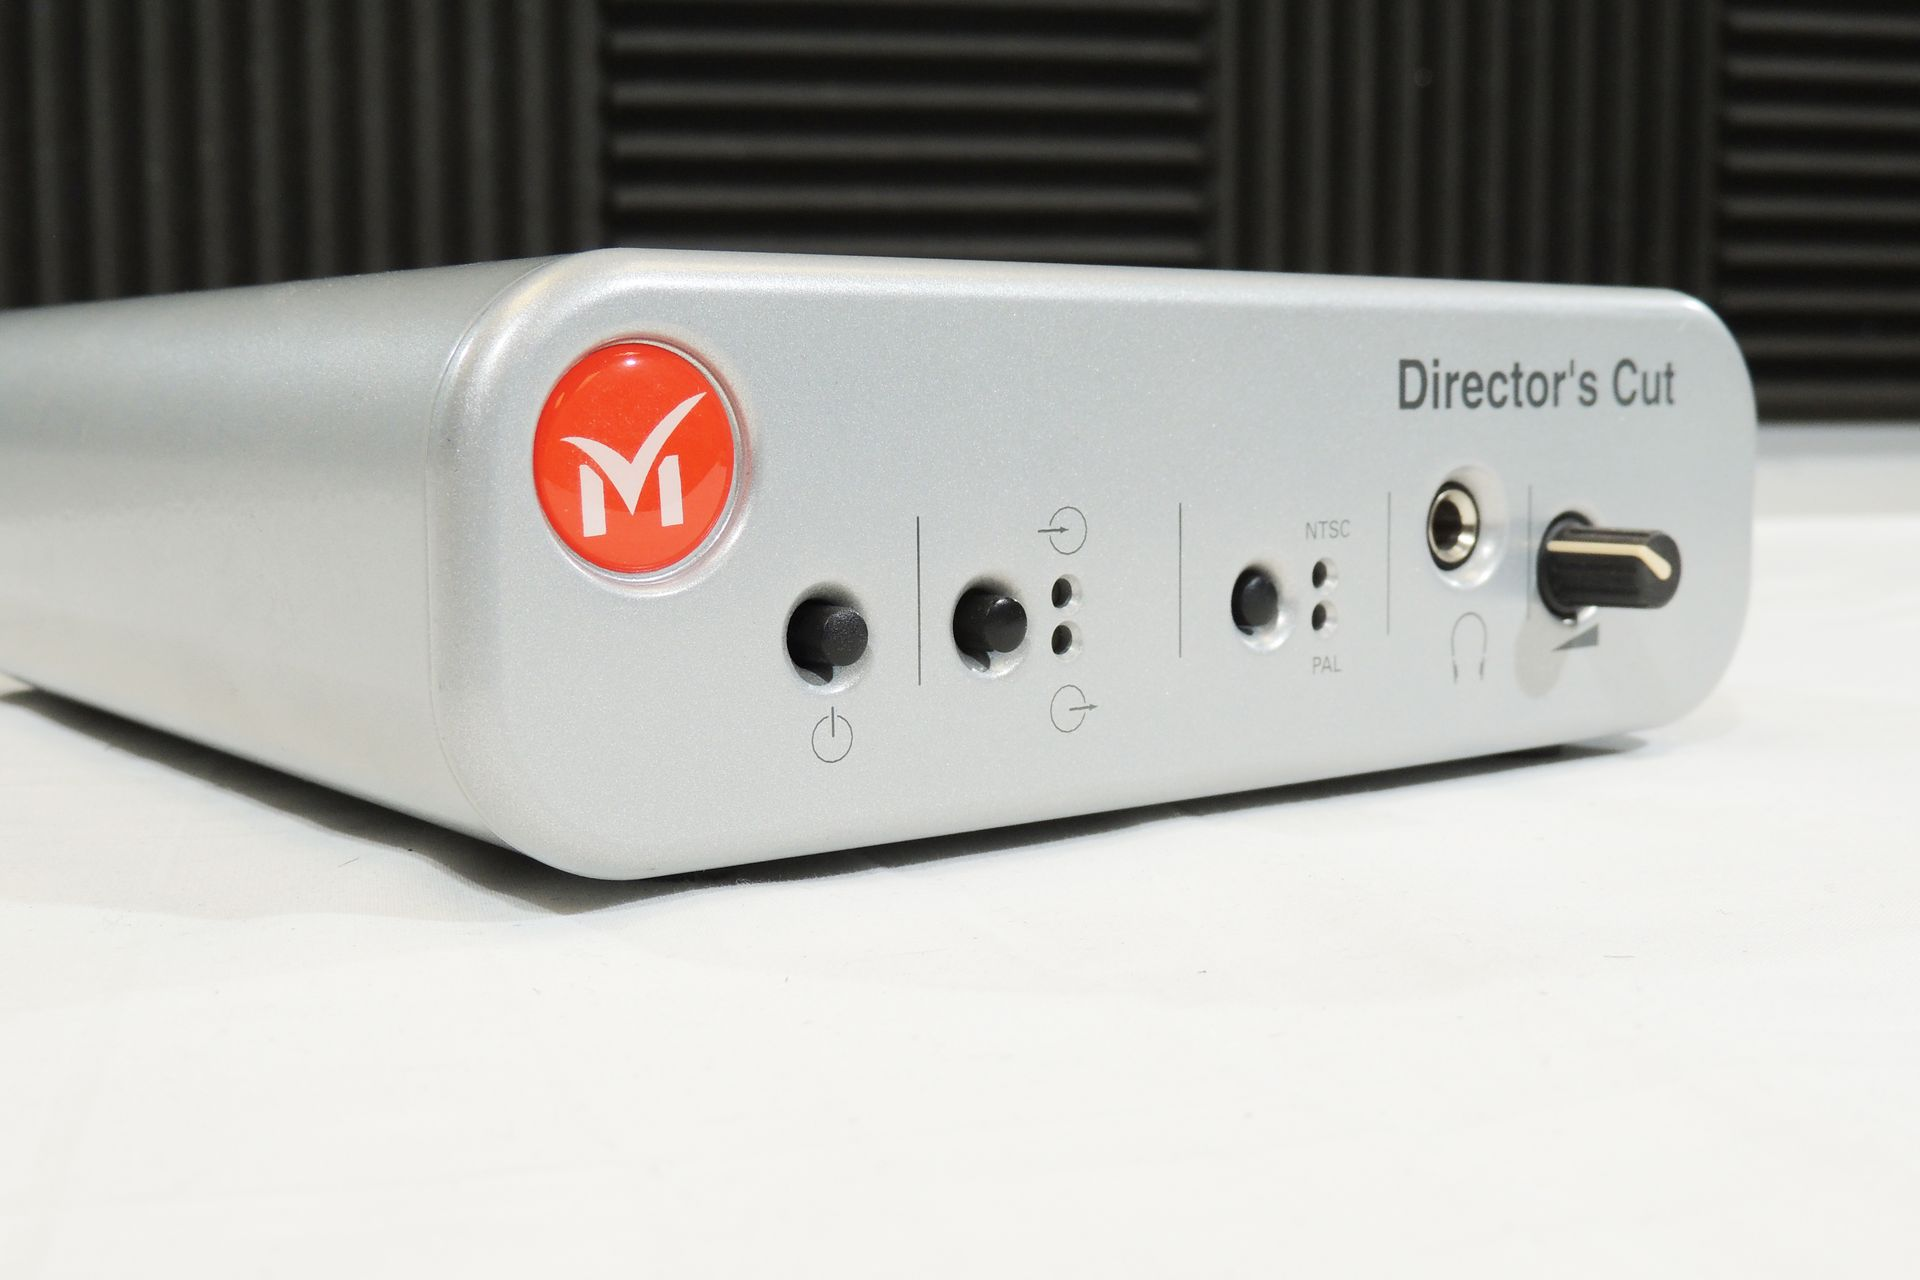 Miglia Director's Cut analogue to digital video converter for sale at Plasma Music